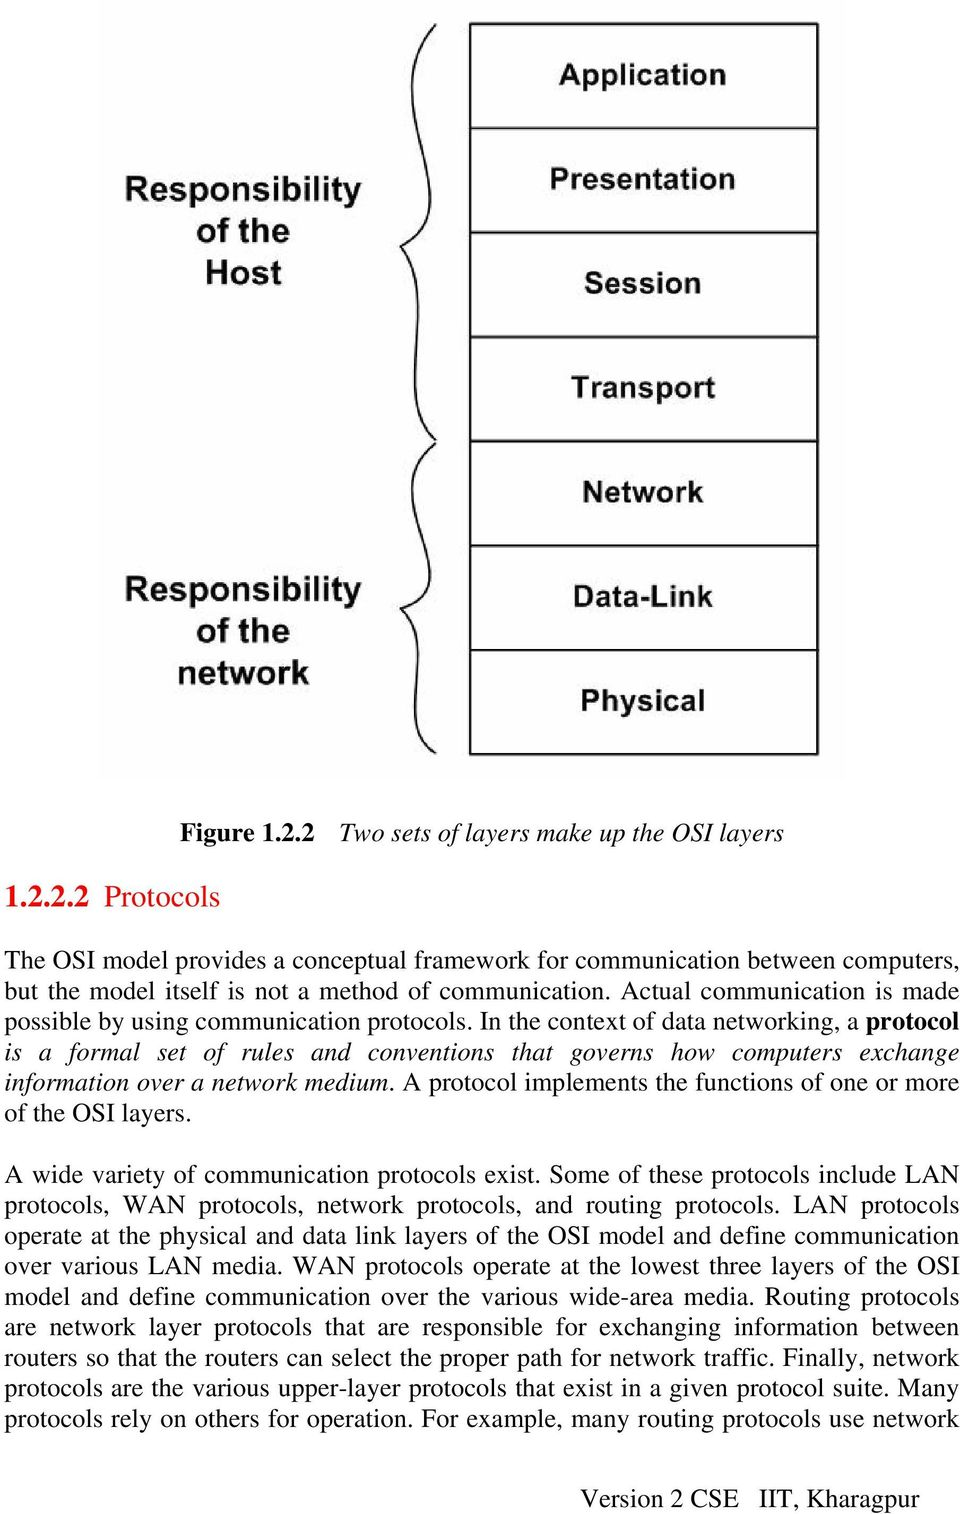 In the context of data networking, a protocol is a formal set of rules and conventions that governs how computers exchange information over a network medium.